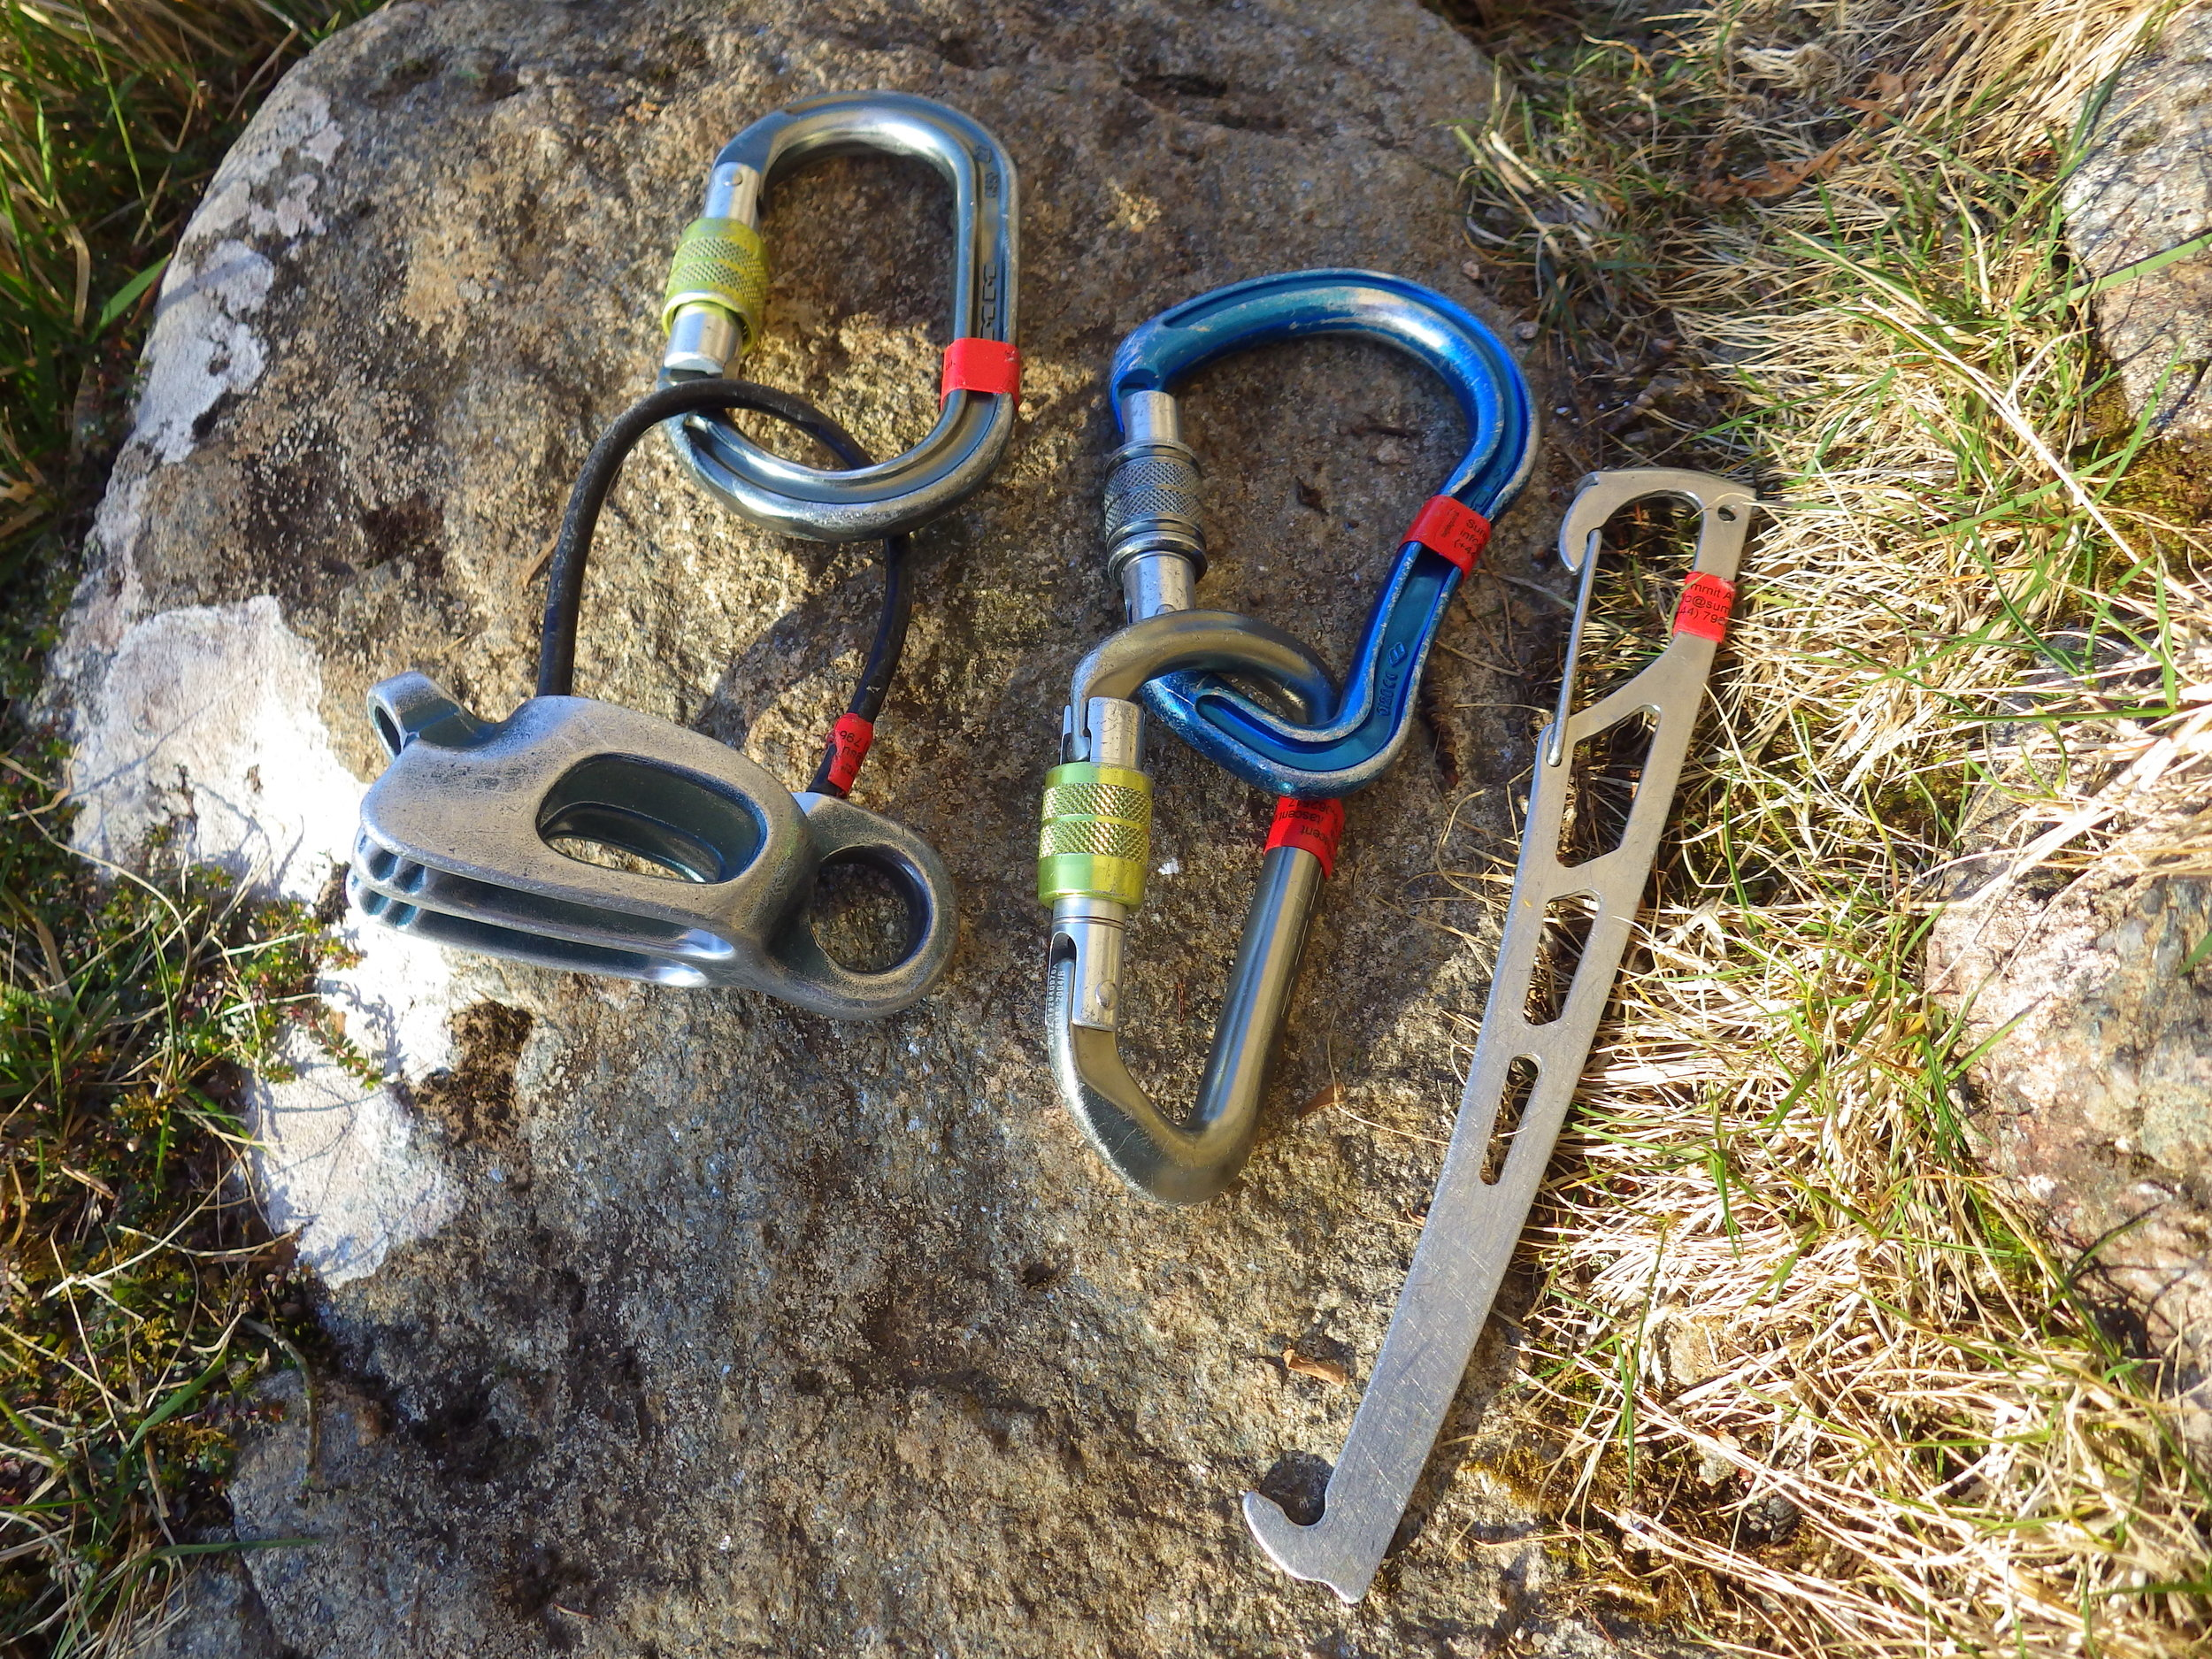 Belay Plate with an Oval carabiner, Blue HMS carabiner and D-Shaped carabiner, and a nutkey